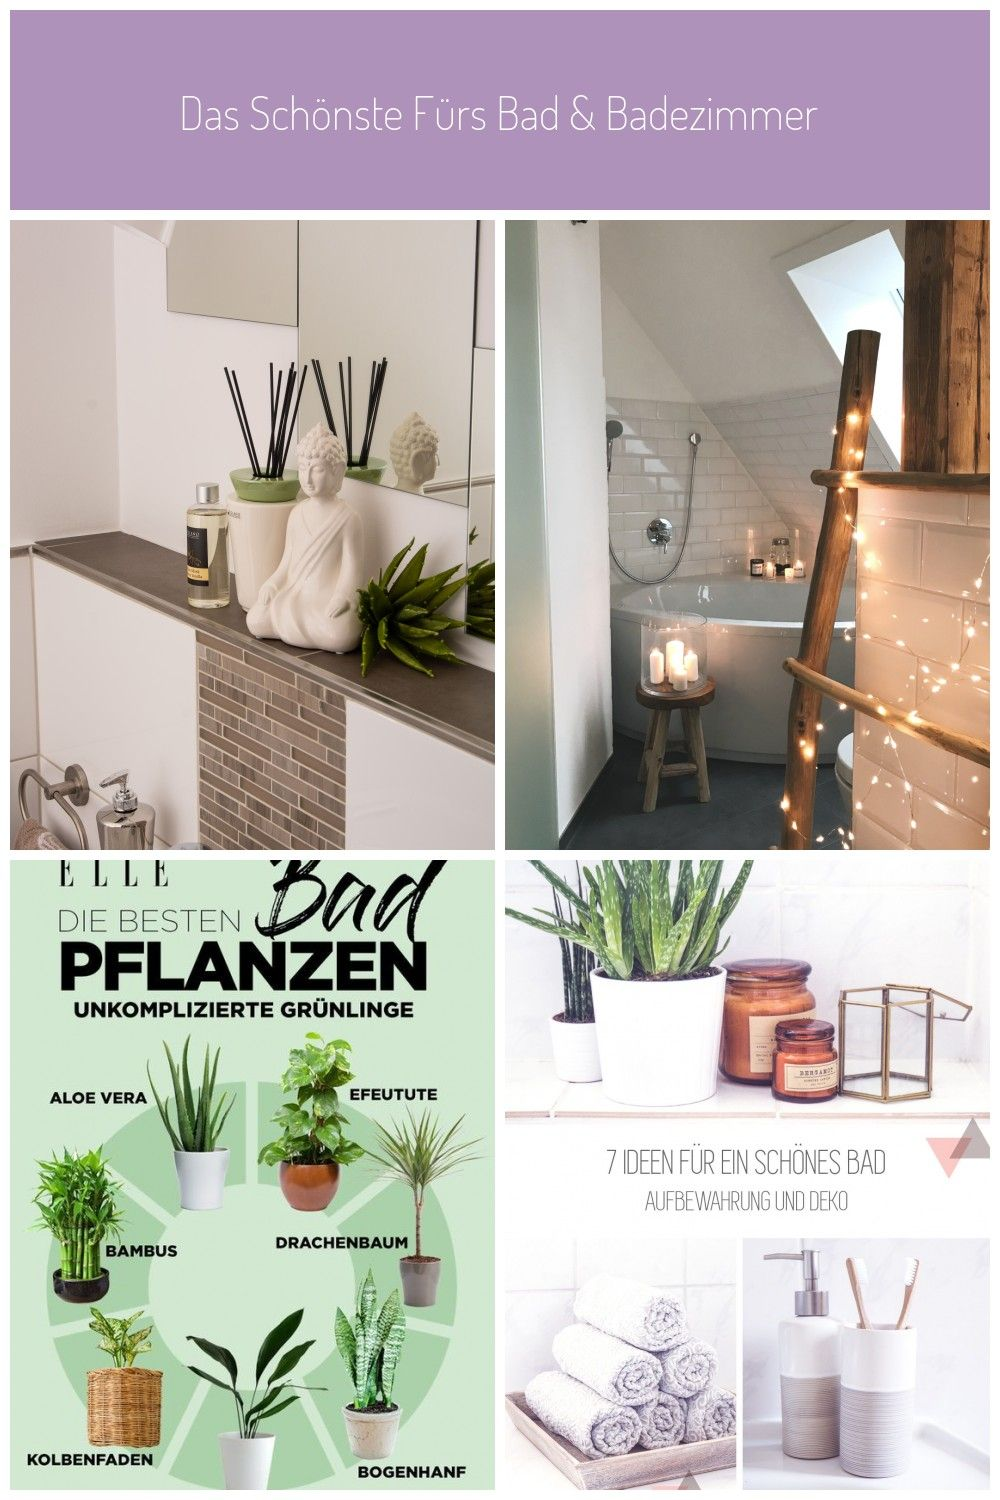 Our Bathroom Decoration From The Zen Collection Is Not Only Stylish It Also Brings A Touch Of Distance Into Your Four Walls The In 2020 Bad Aufbewahrung Ideen Efeutute